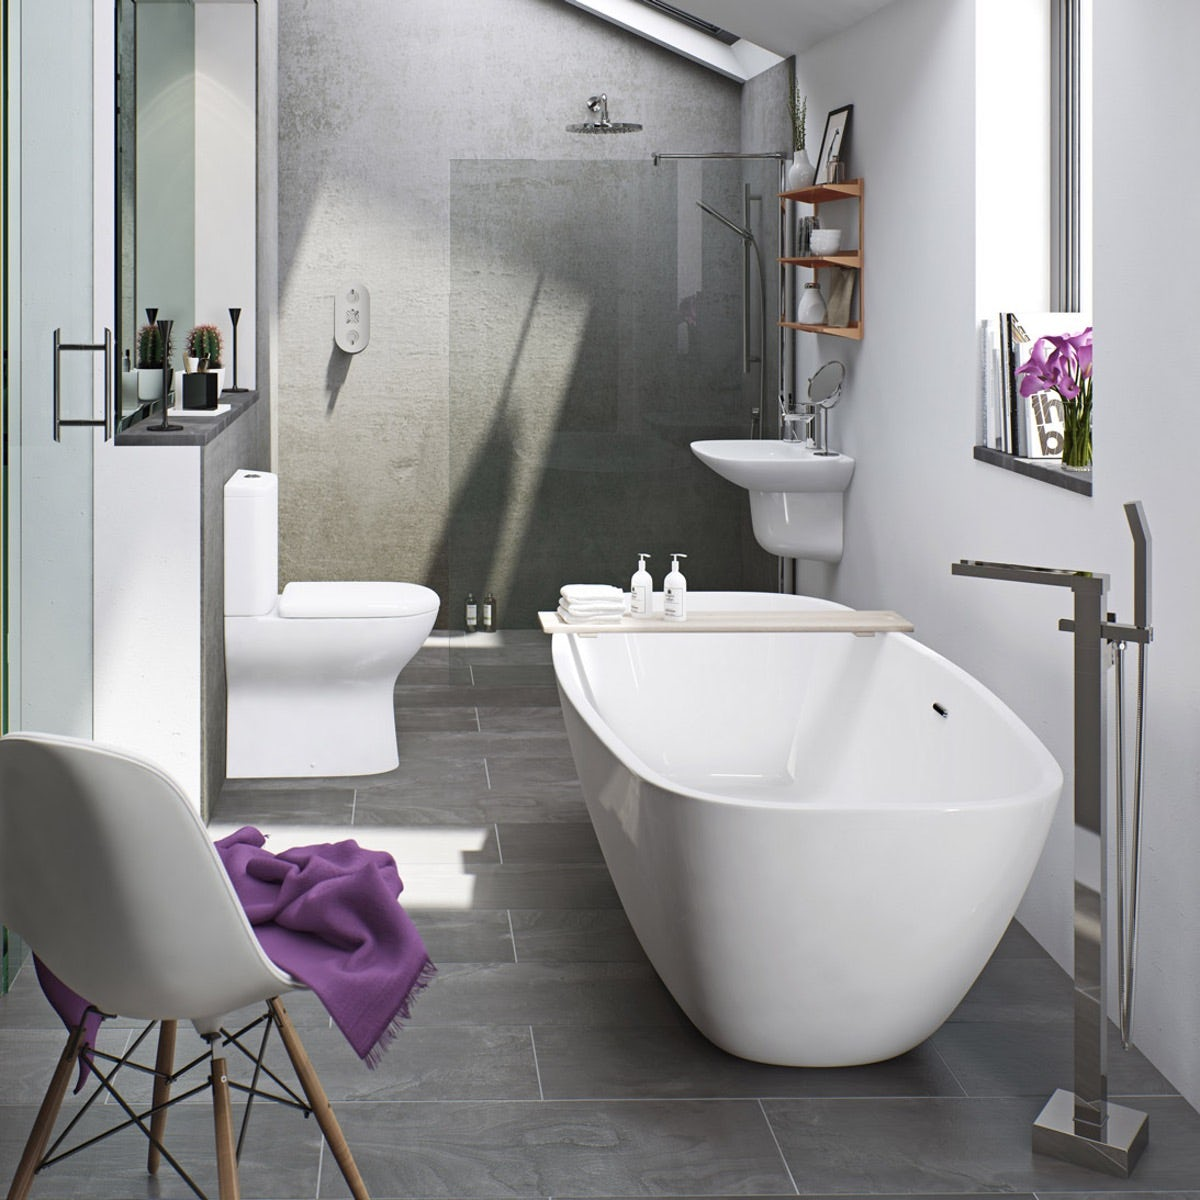 Unusual bathroom suites - Interesting Bathroom Suites Suites Bathroom To Ideas Bathroom Suites